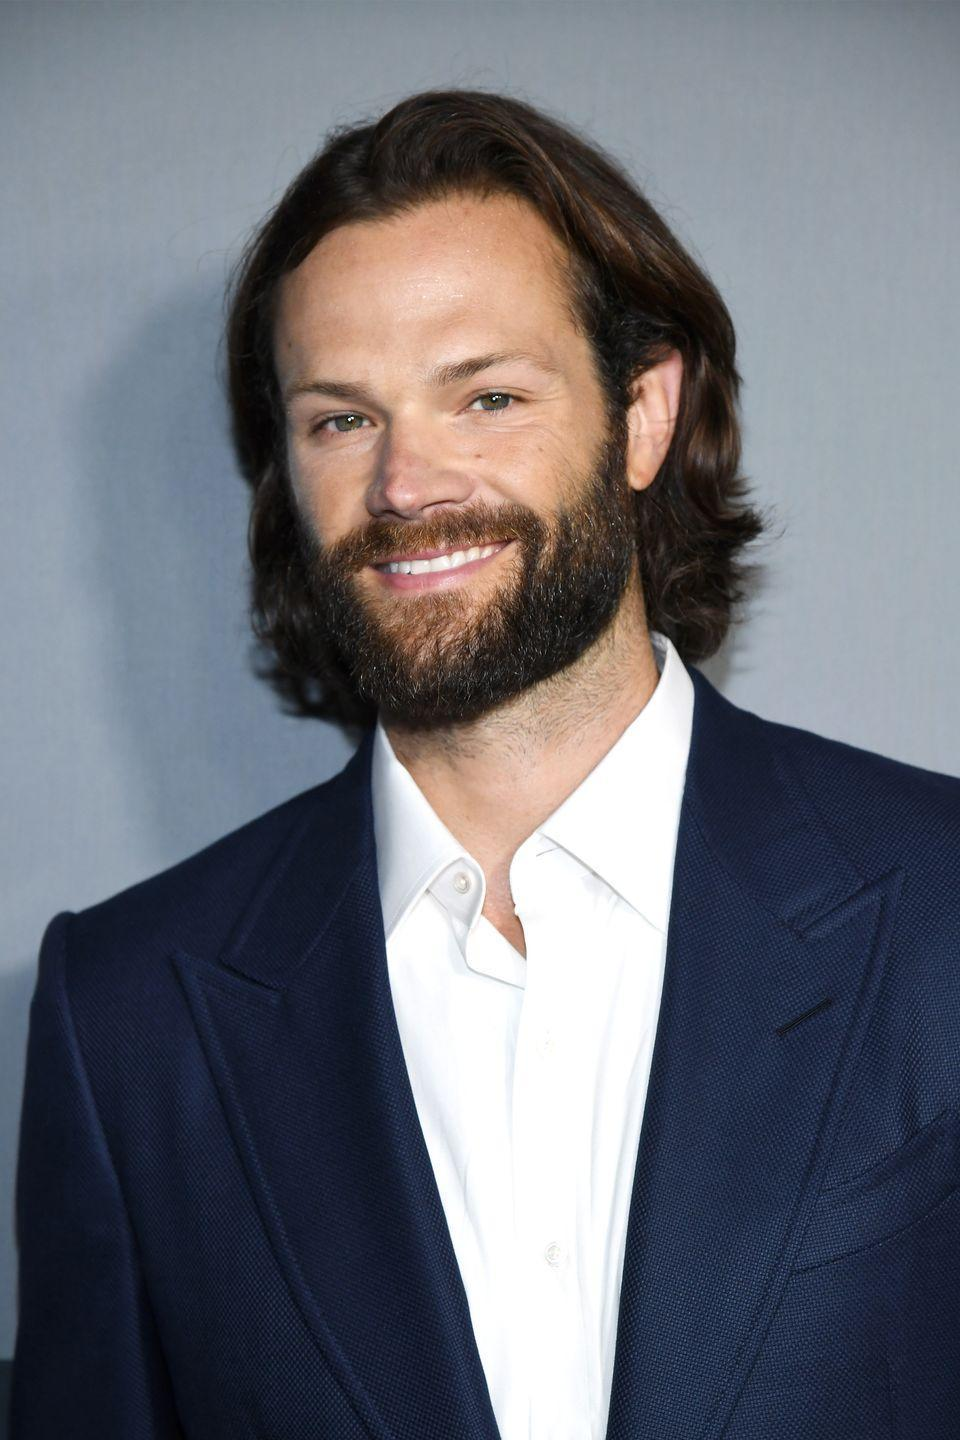 "<p>The 37-year-old actor is ending his record-breaking 15 season run as monster hunter Sam Winchester on the fantasy TV series <em>Supernatural </em>in 2020. Fear not, he'll be back on TV before you know it. Padalecki is set to star in the series revival of <em>Walker, Texas Ranger</em>.</p><p><strong>Related: <a href=""https://www.redbookmag.com/life/g31249839/new-tv-shows/"" rel=""nofollow noopener"" target=""_blank"" data-ylk=""slk:19 New TV Shows We Can't Wait to Binge"" class=""link rapid-noclick-resp"">19 New TV Shows We Can't Wait to Binge</a></strong></p>"